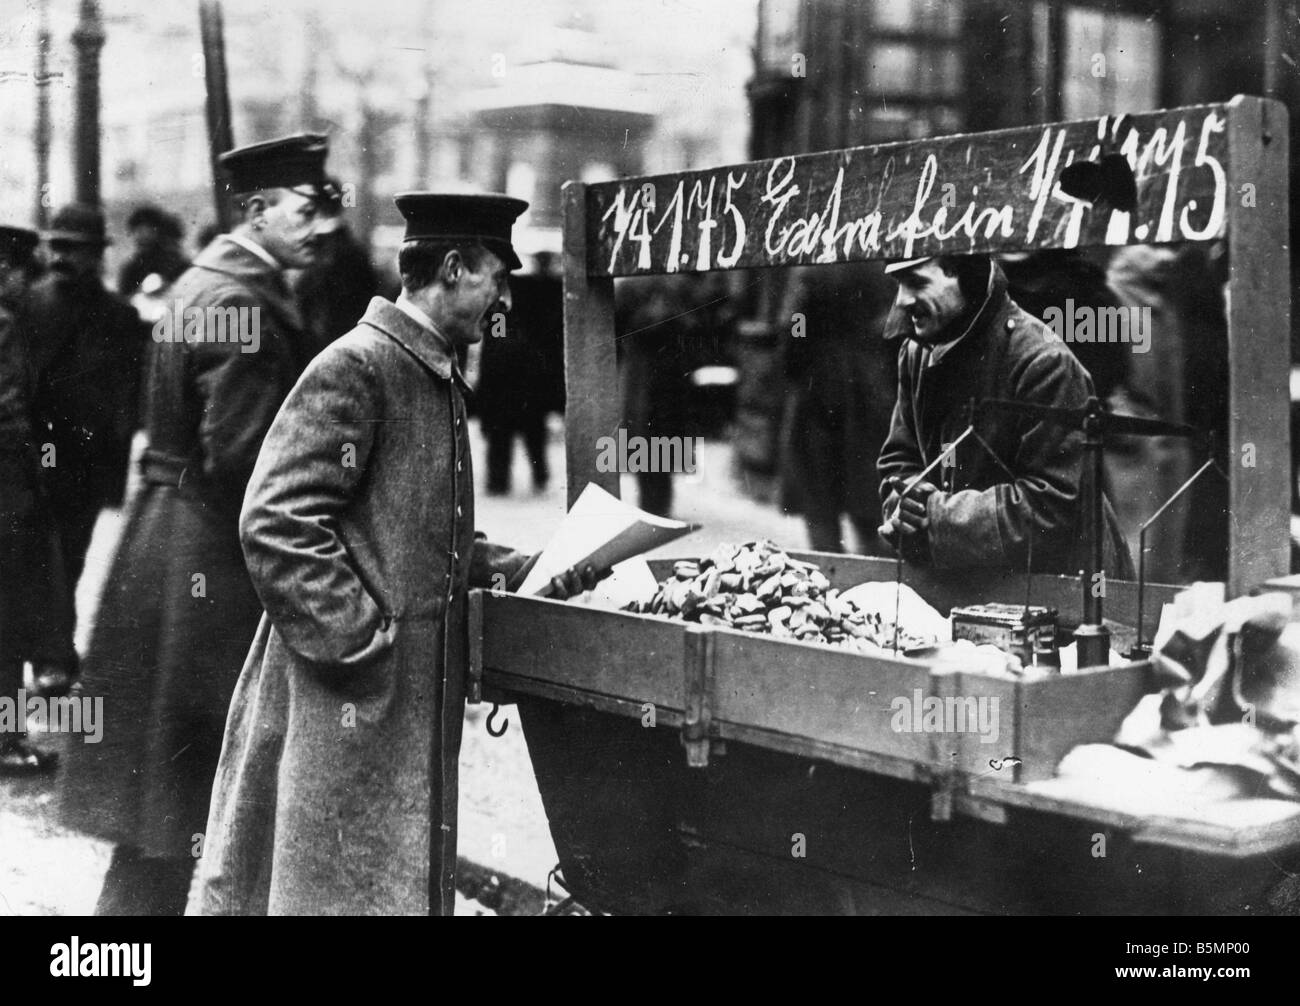 8 1918 12 0 A4 Soldier Sells Christmas Cookies 1918 Berlin end of the war and Revolution 1918 19 Soldier sells Christmas - Stock Image